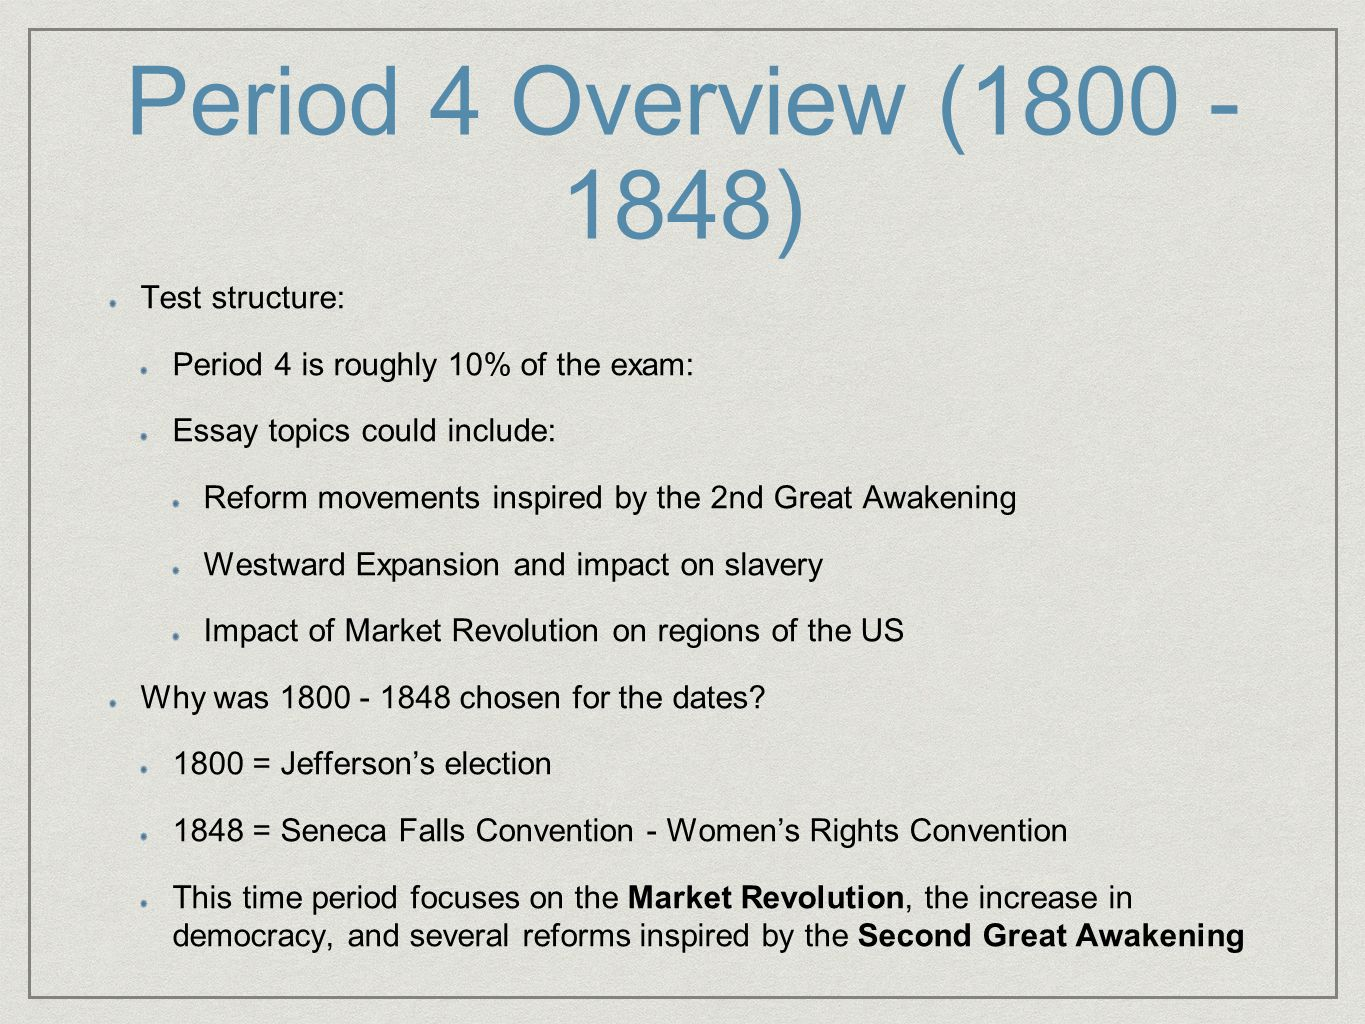 thesis on the second great awakening Both blacks and women began to participate in evangelical revivals associated with the second great awakening at the end of the 18th century from these revivals grew the roots of the both the feminist and abolitionist movements.